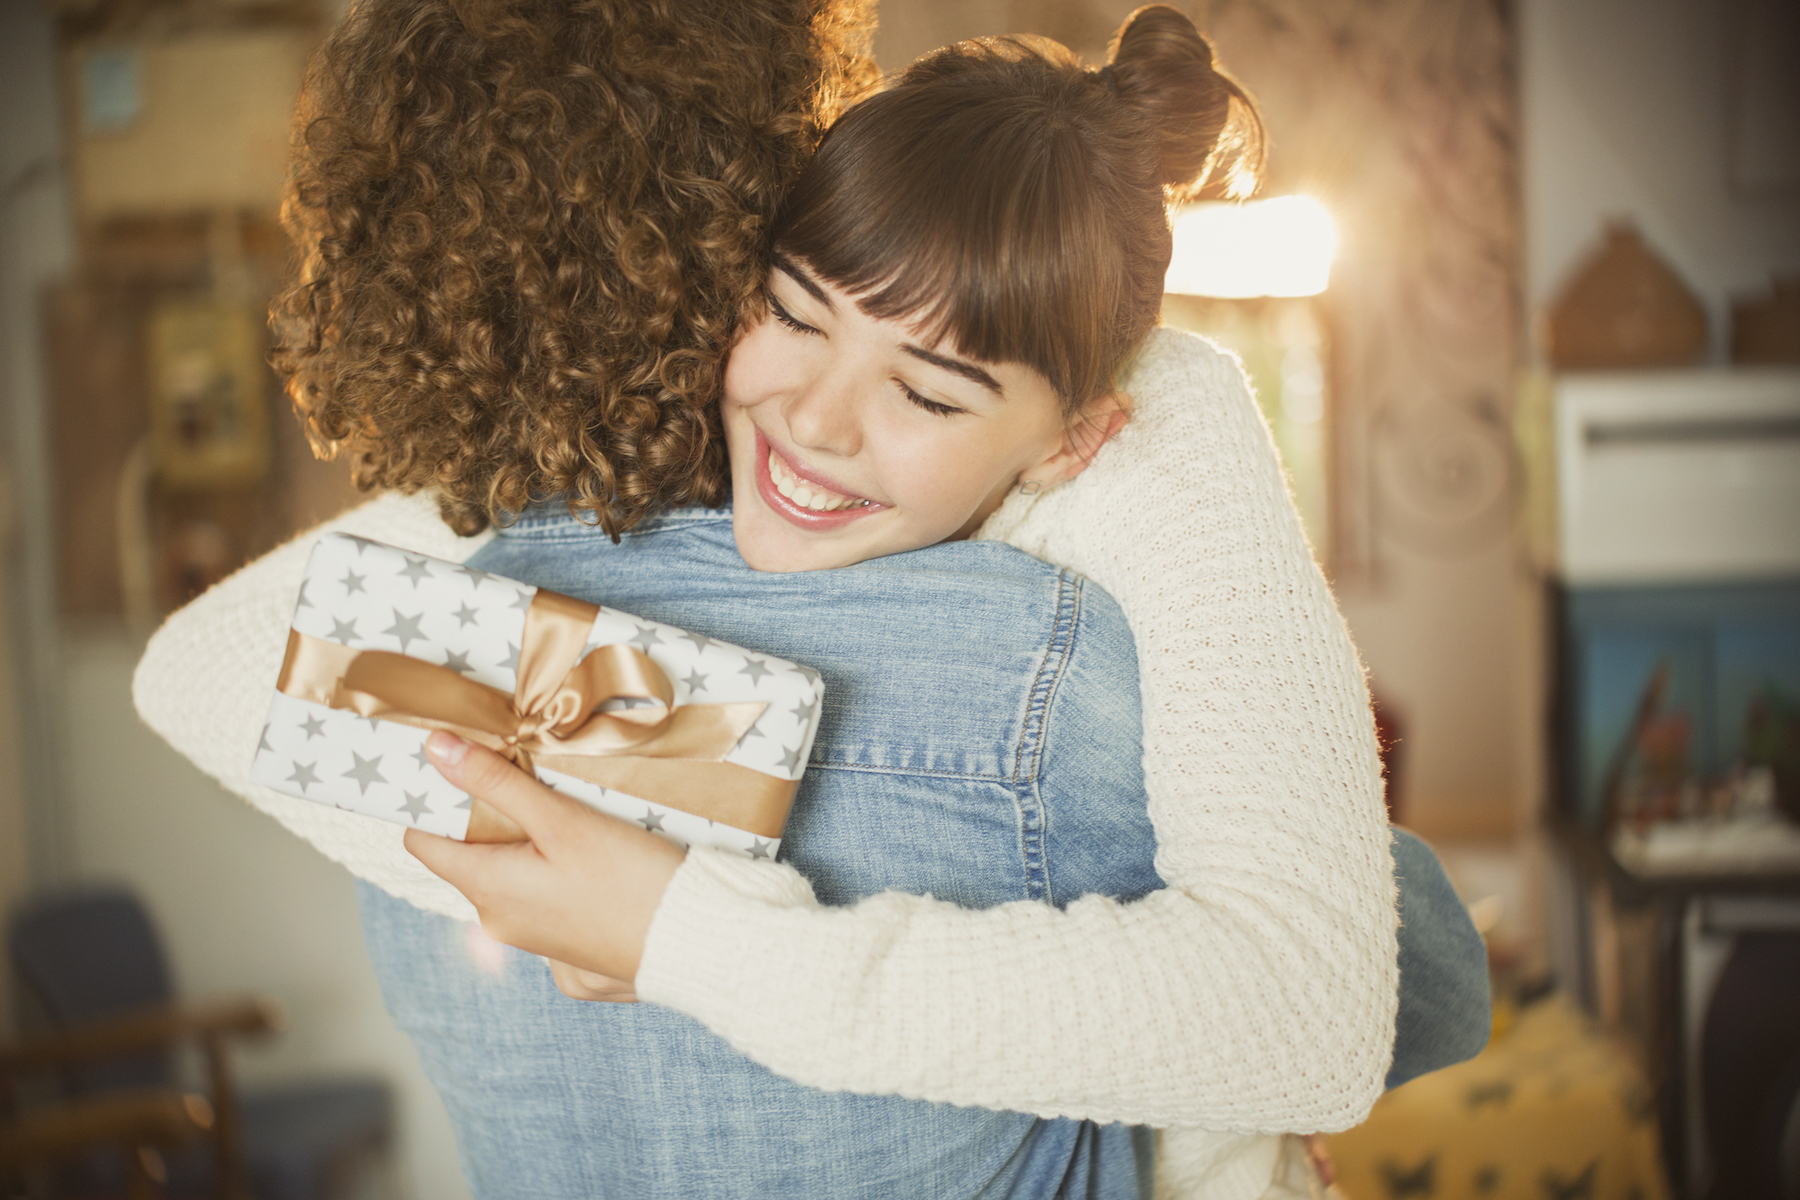 Woman Holding Wrapped Present Hugging Boyfriend